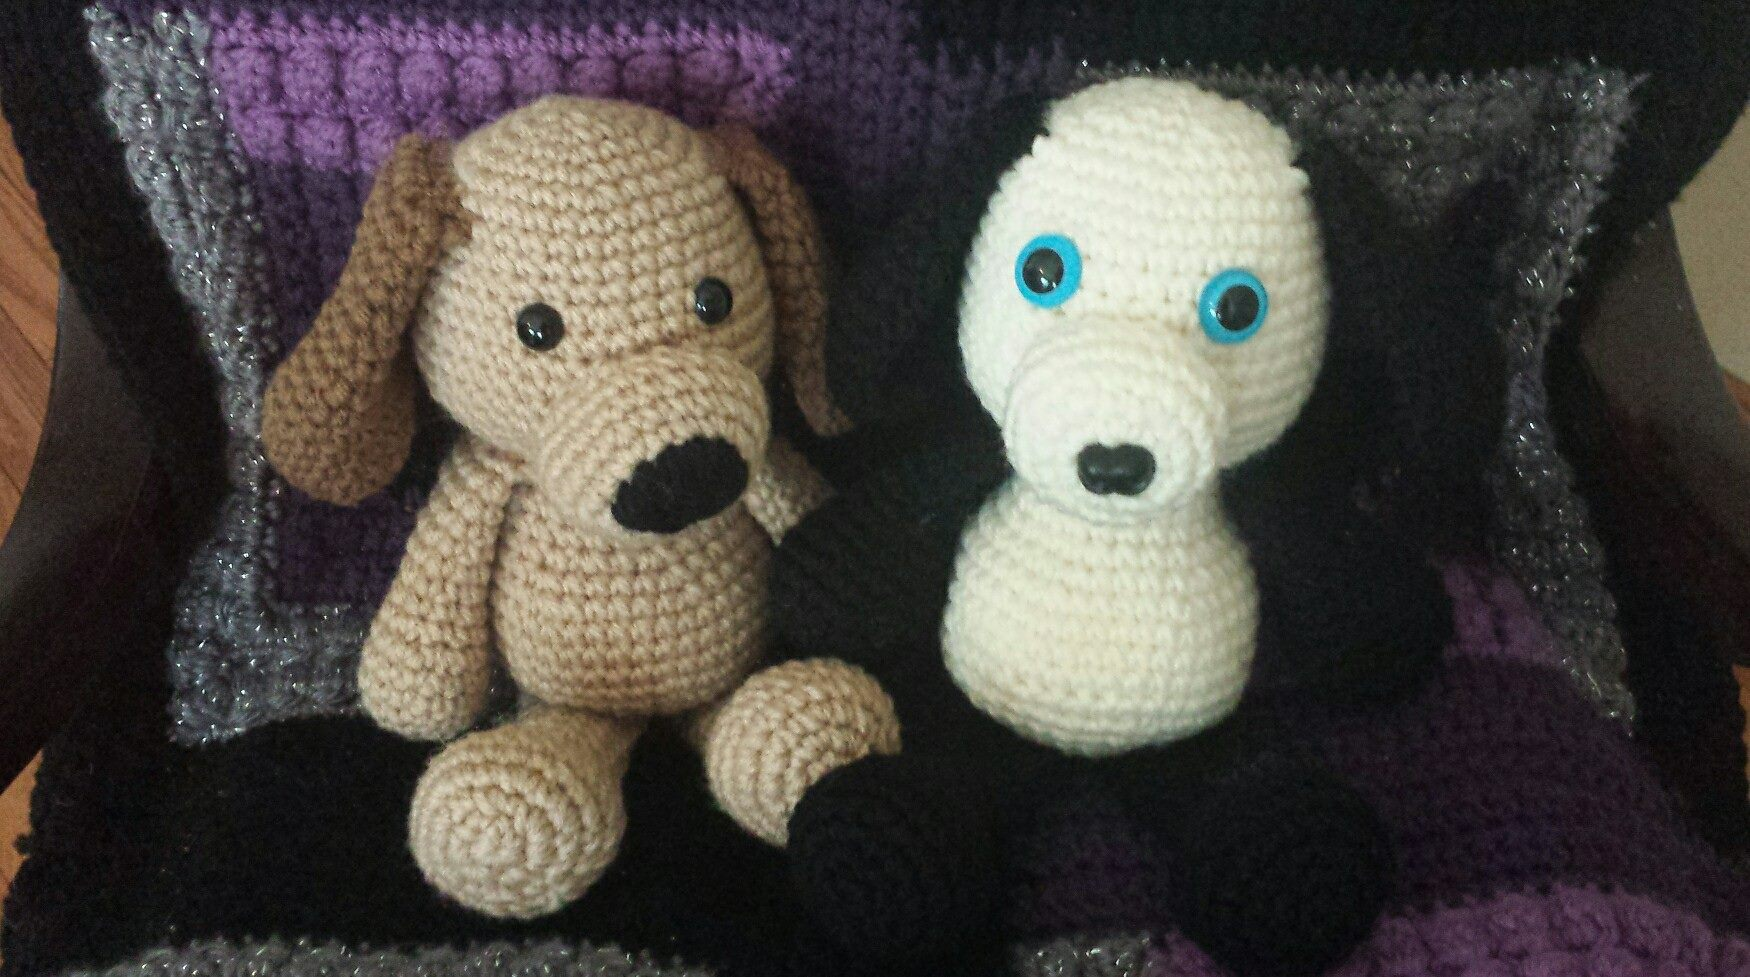 Cuddly crochet puppies